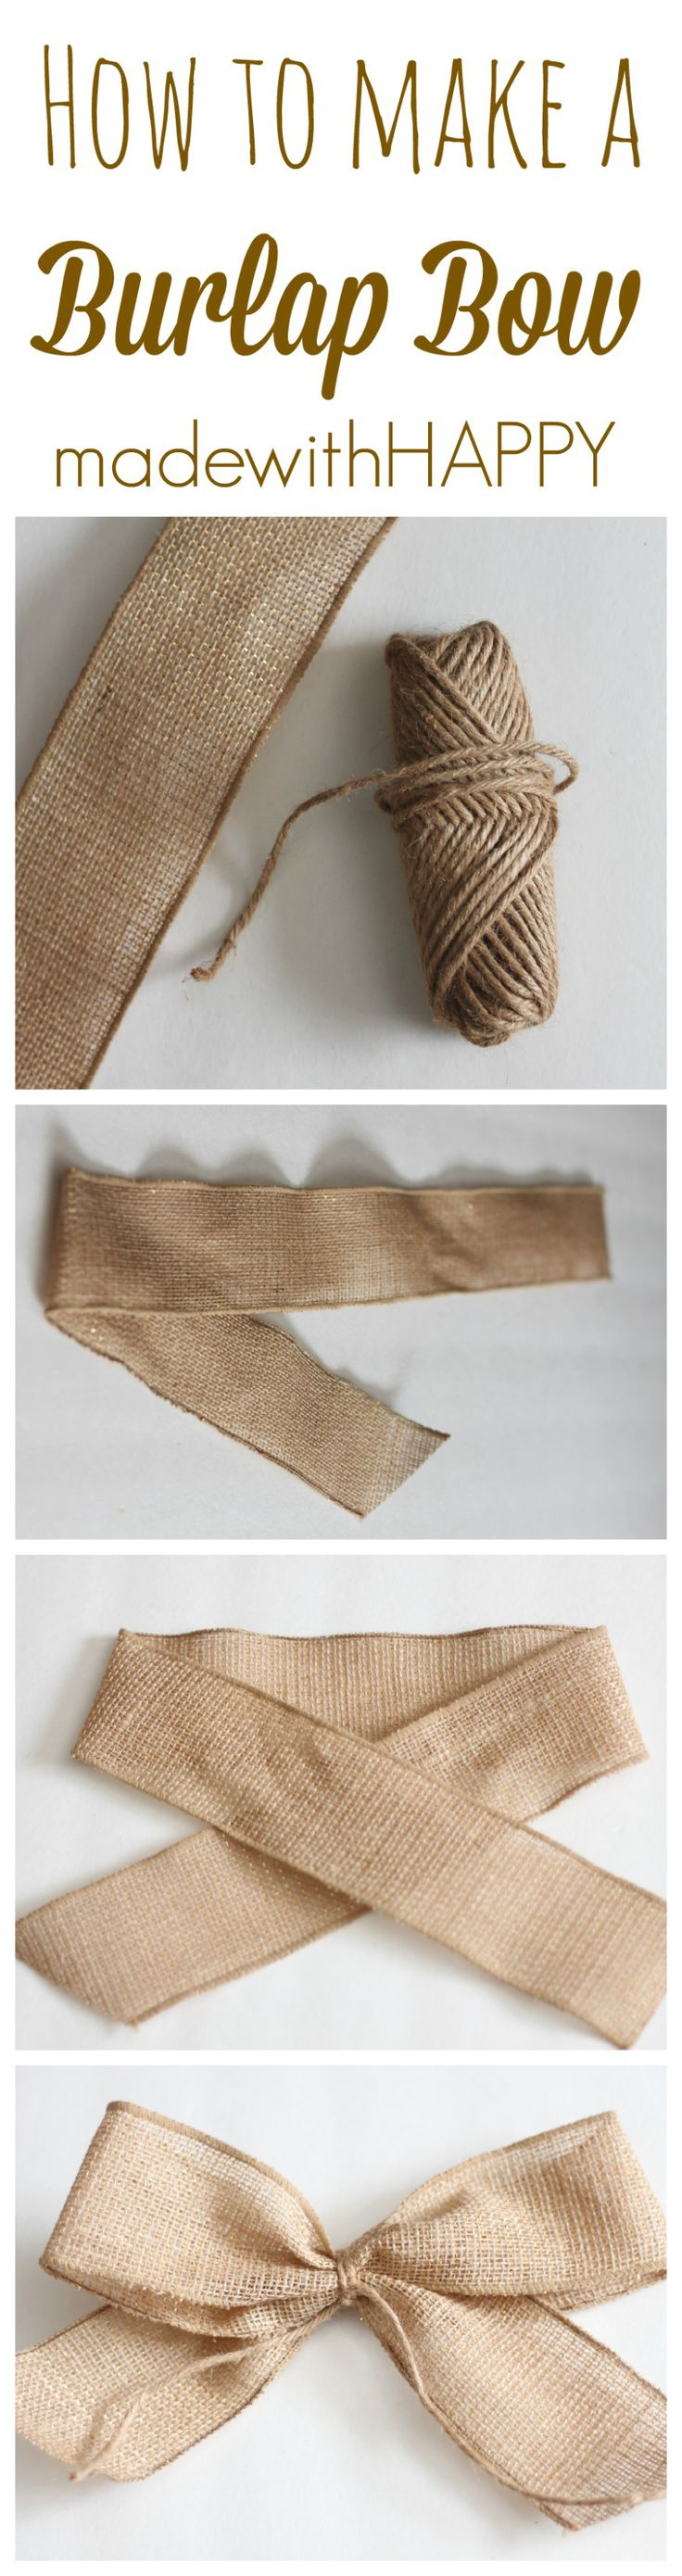 how-to-make-a-burlap-bow-pin